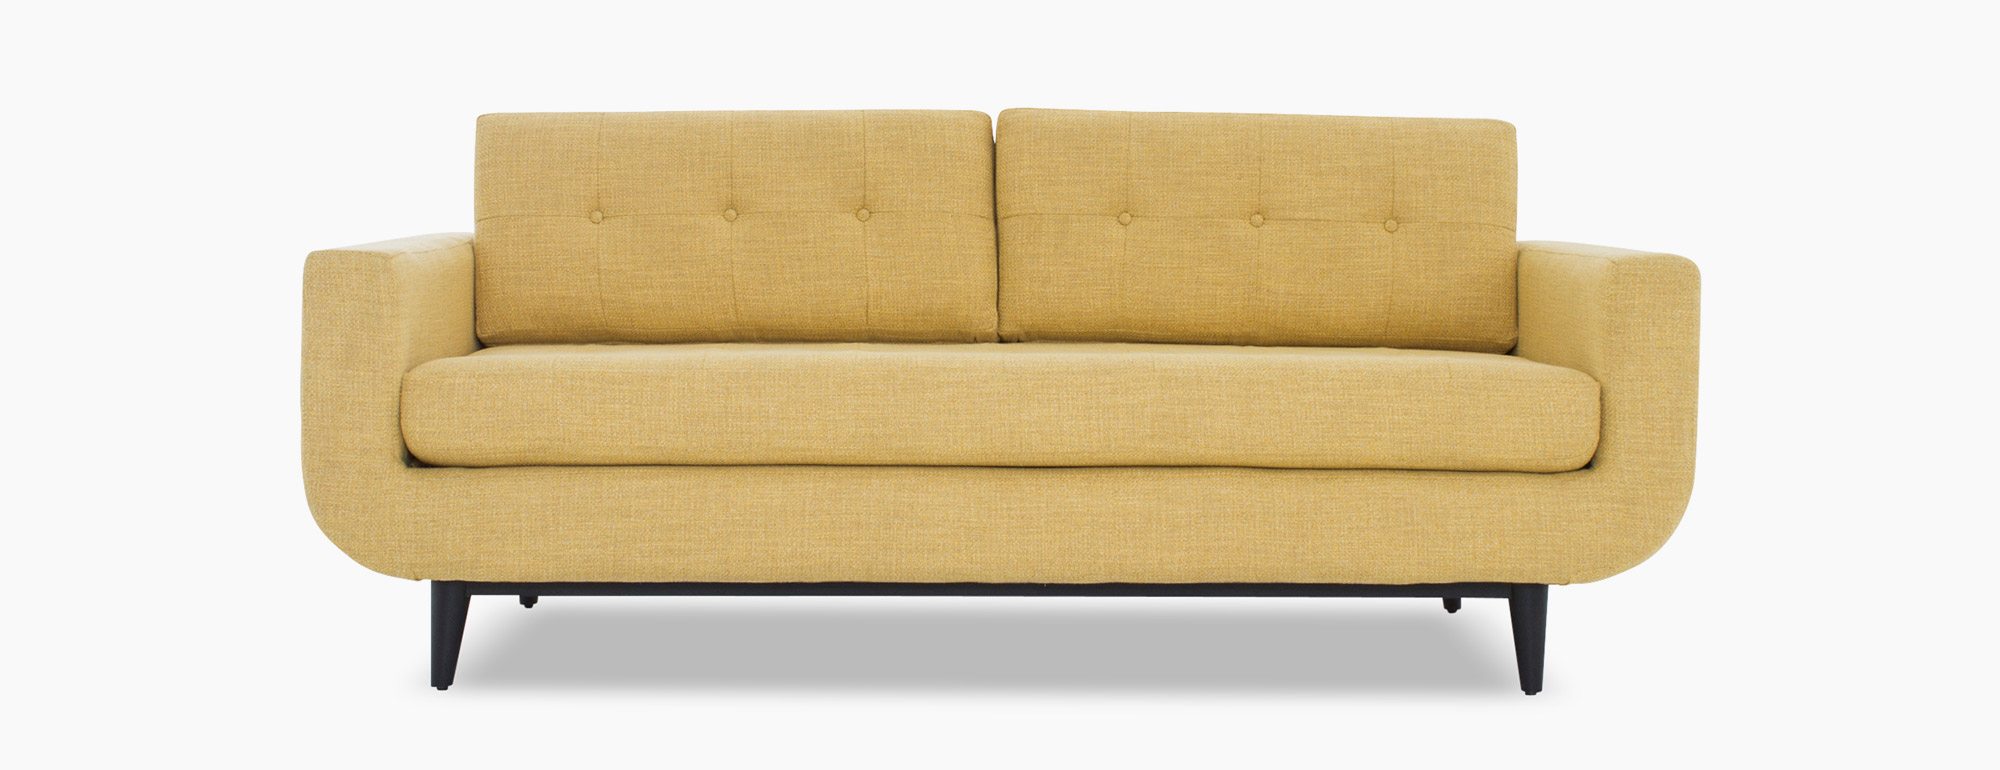 hero-gervin-loveseat-1